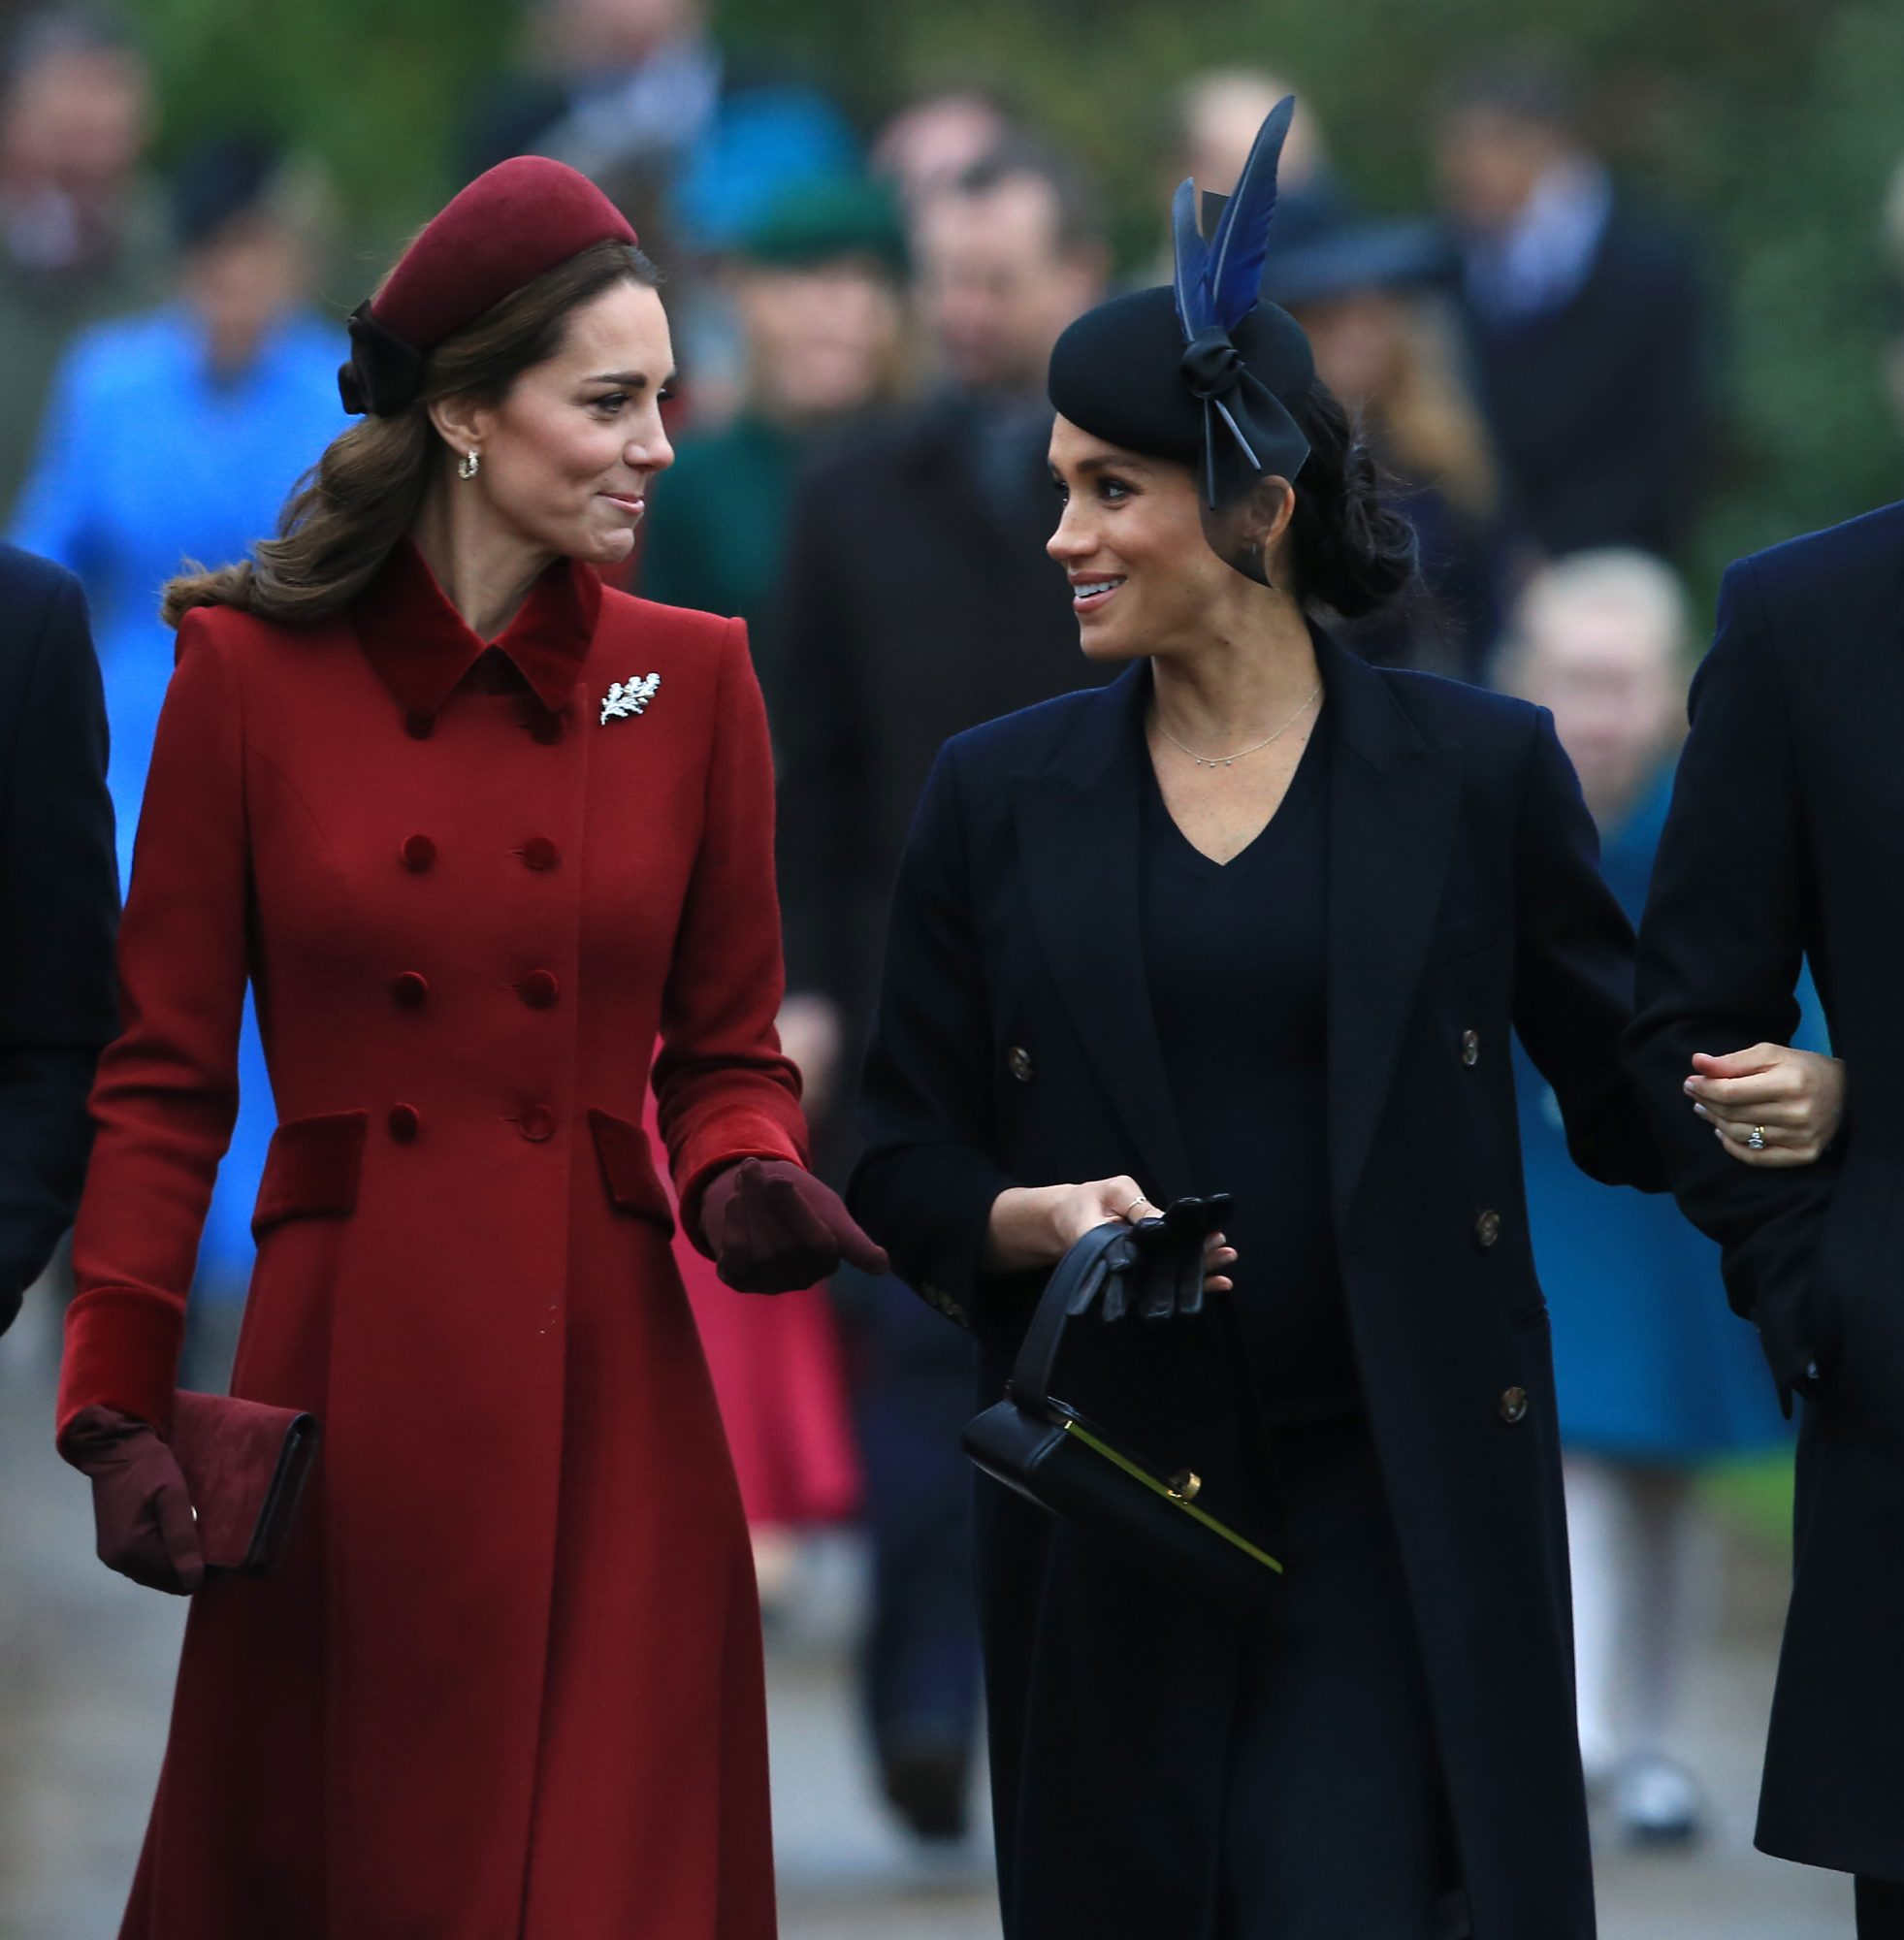 The Royal Family Attend Church On Christmas Day